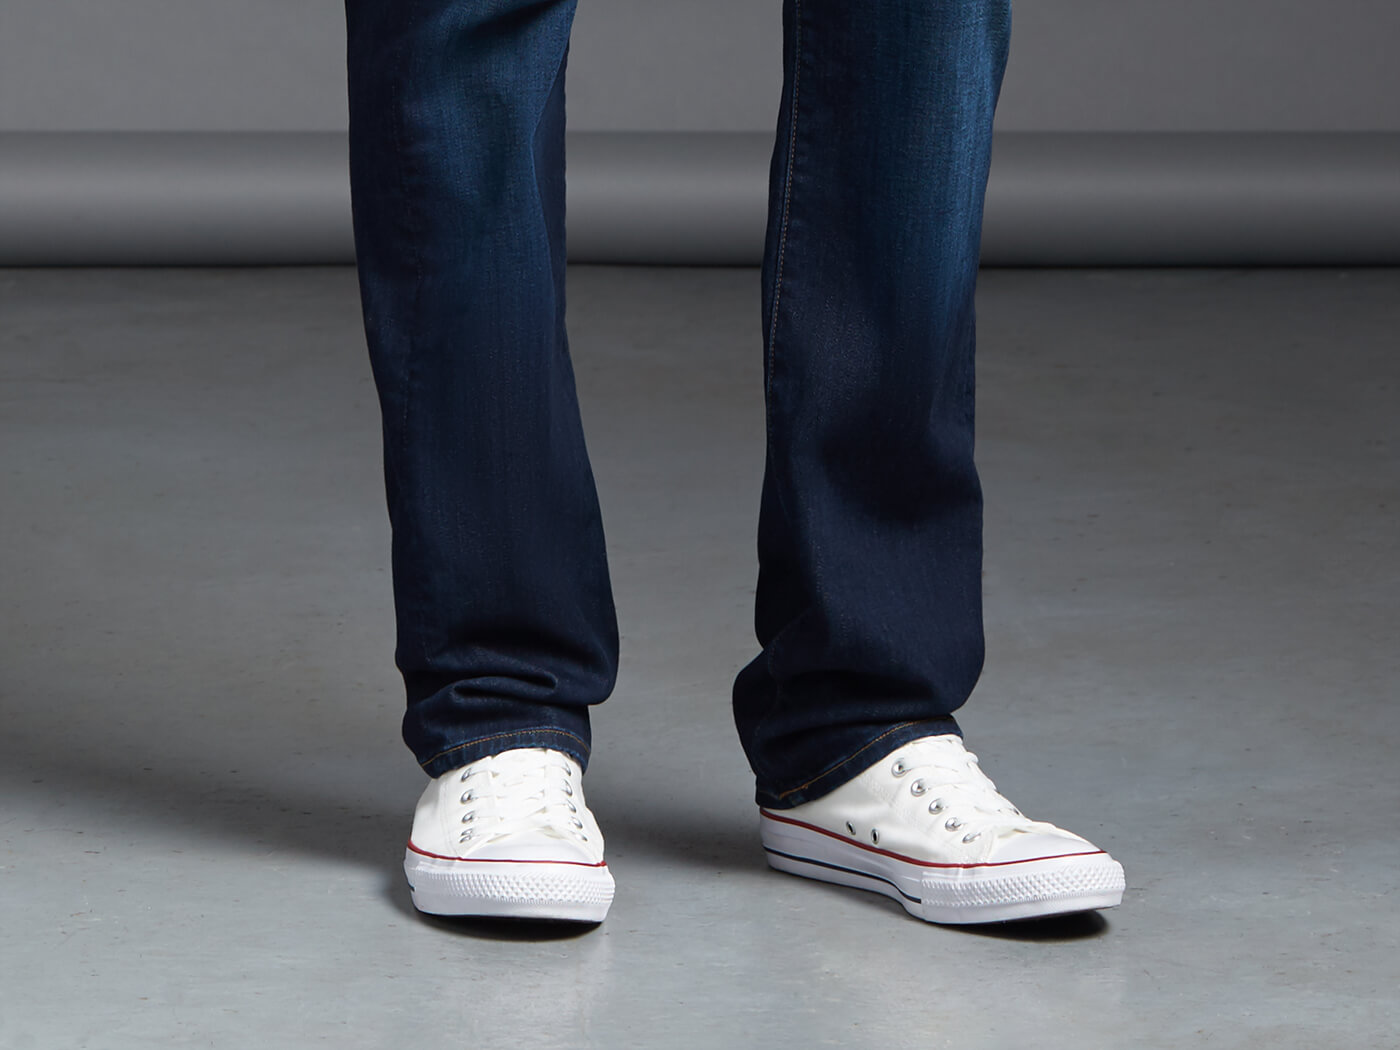 Amazing The Right Way To Pair Jeans With Shoes | Stitch Fix Men